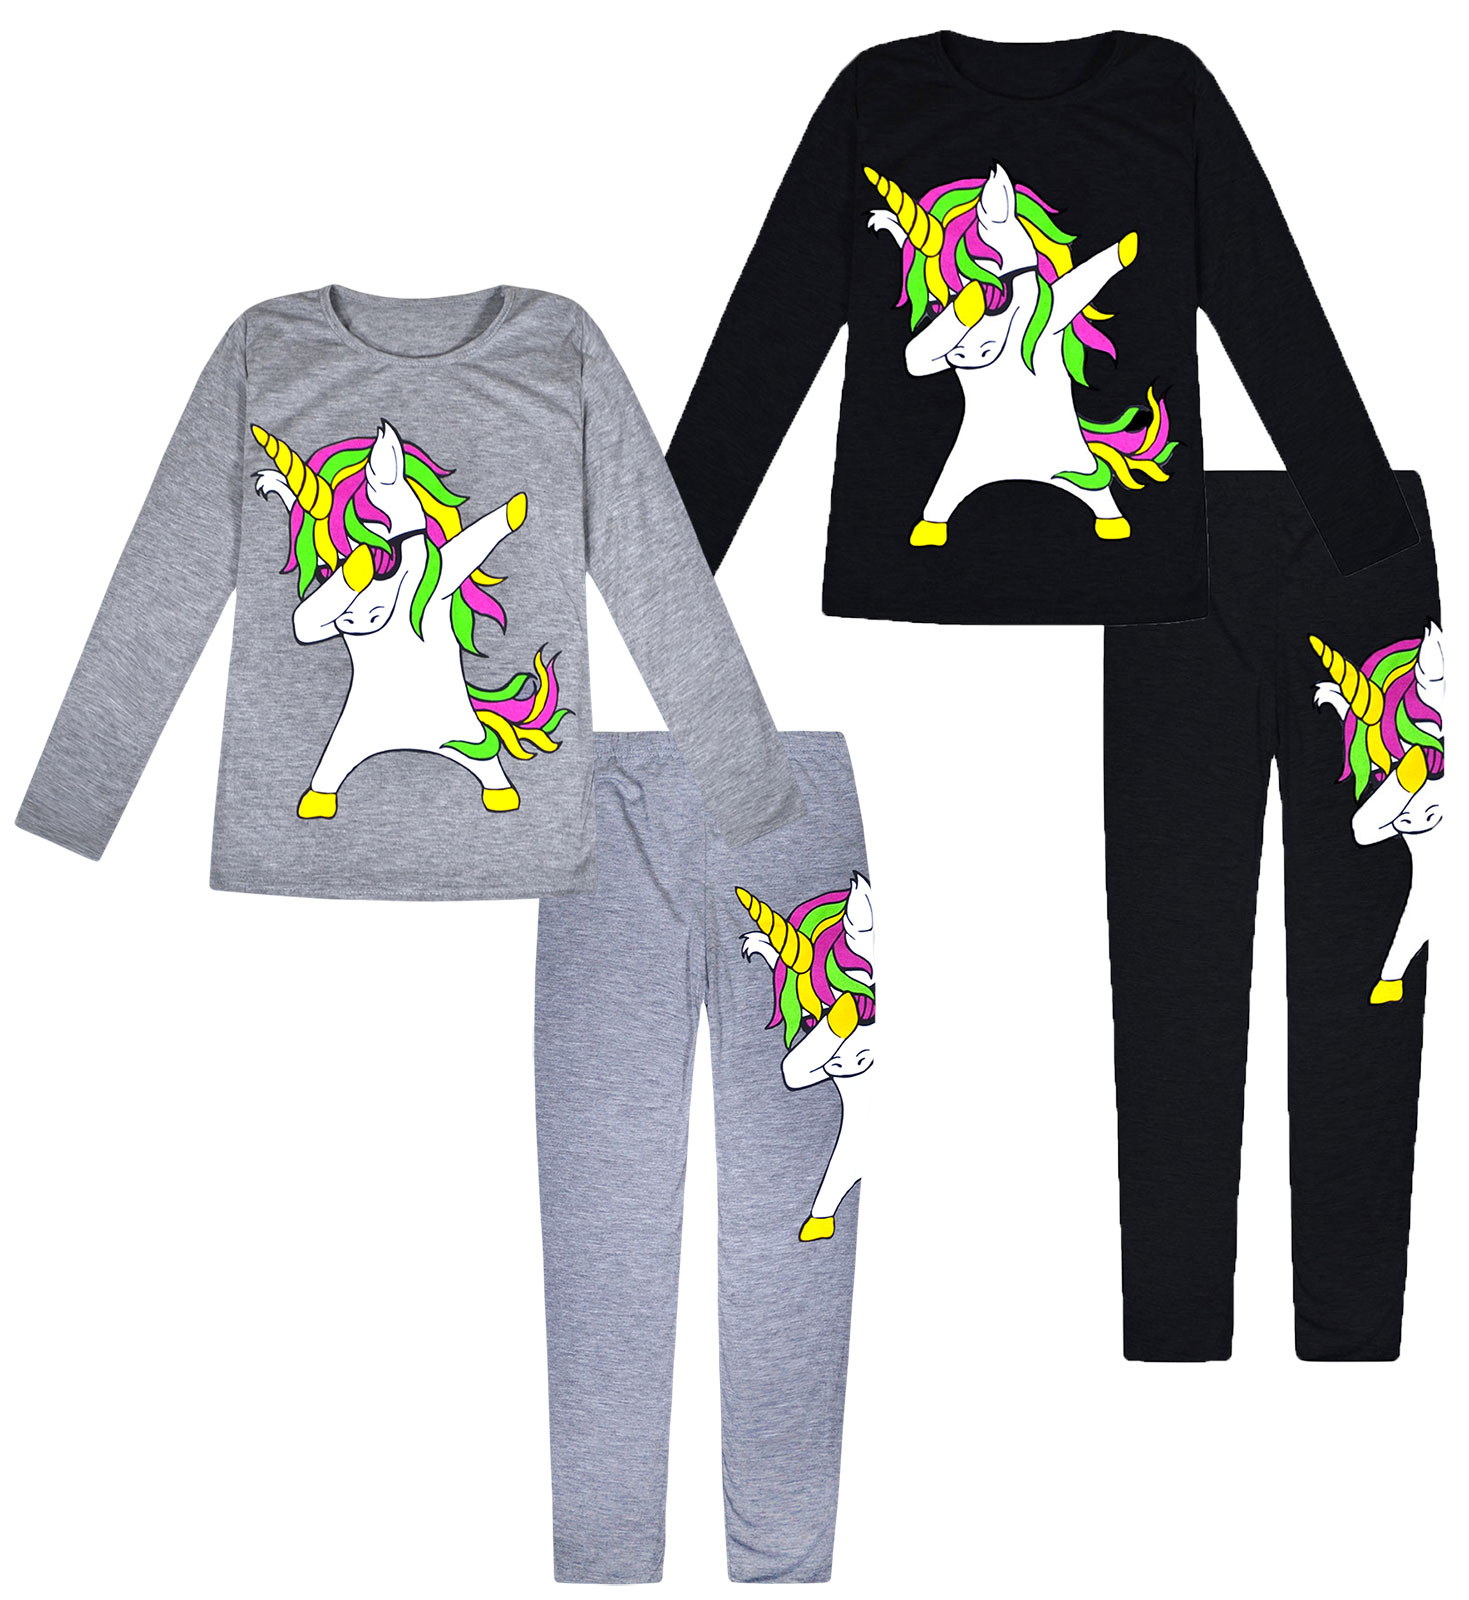 Girls Kids Unicorn Dab Floss Outfit Top /& Leggings Tracksuit Set Neon Age 5-13 Y